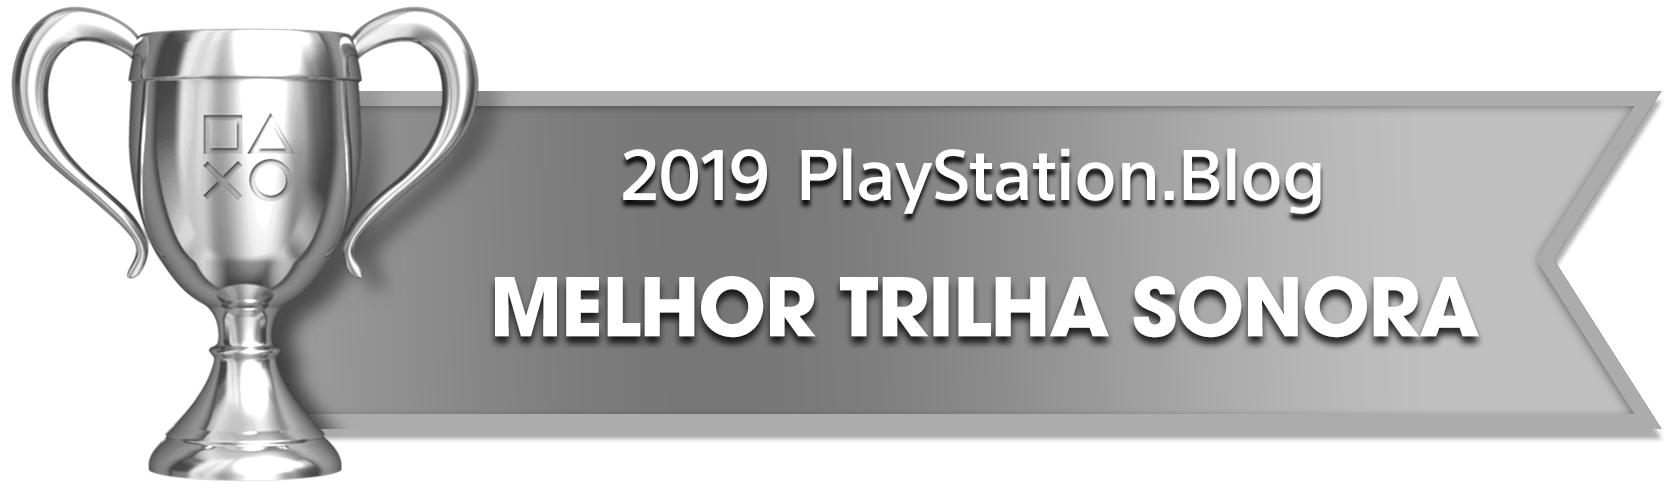 PS Blog Game of the Year 2019 - Best Soundtrack - 3 - Silver